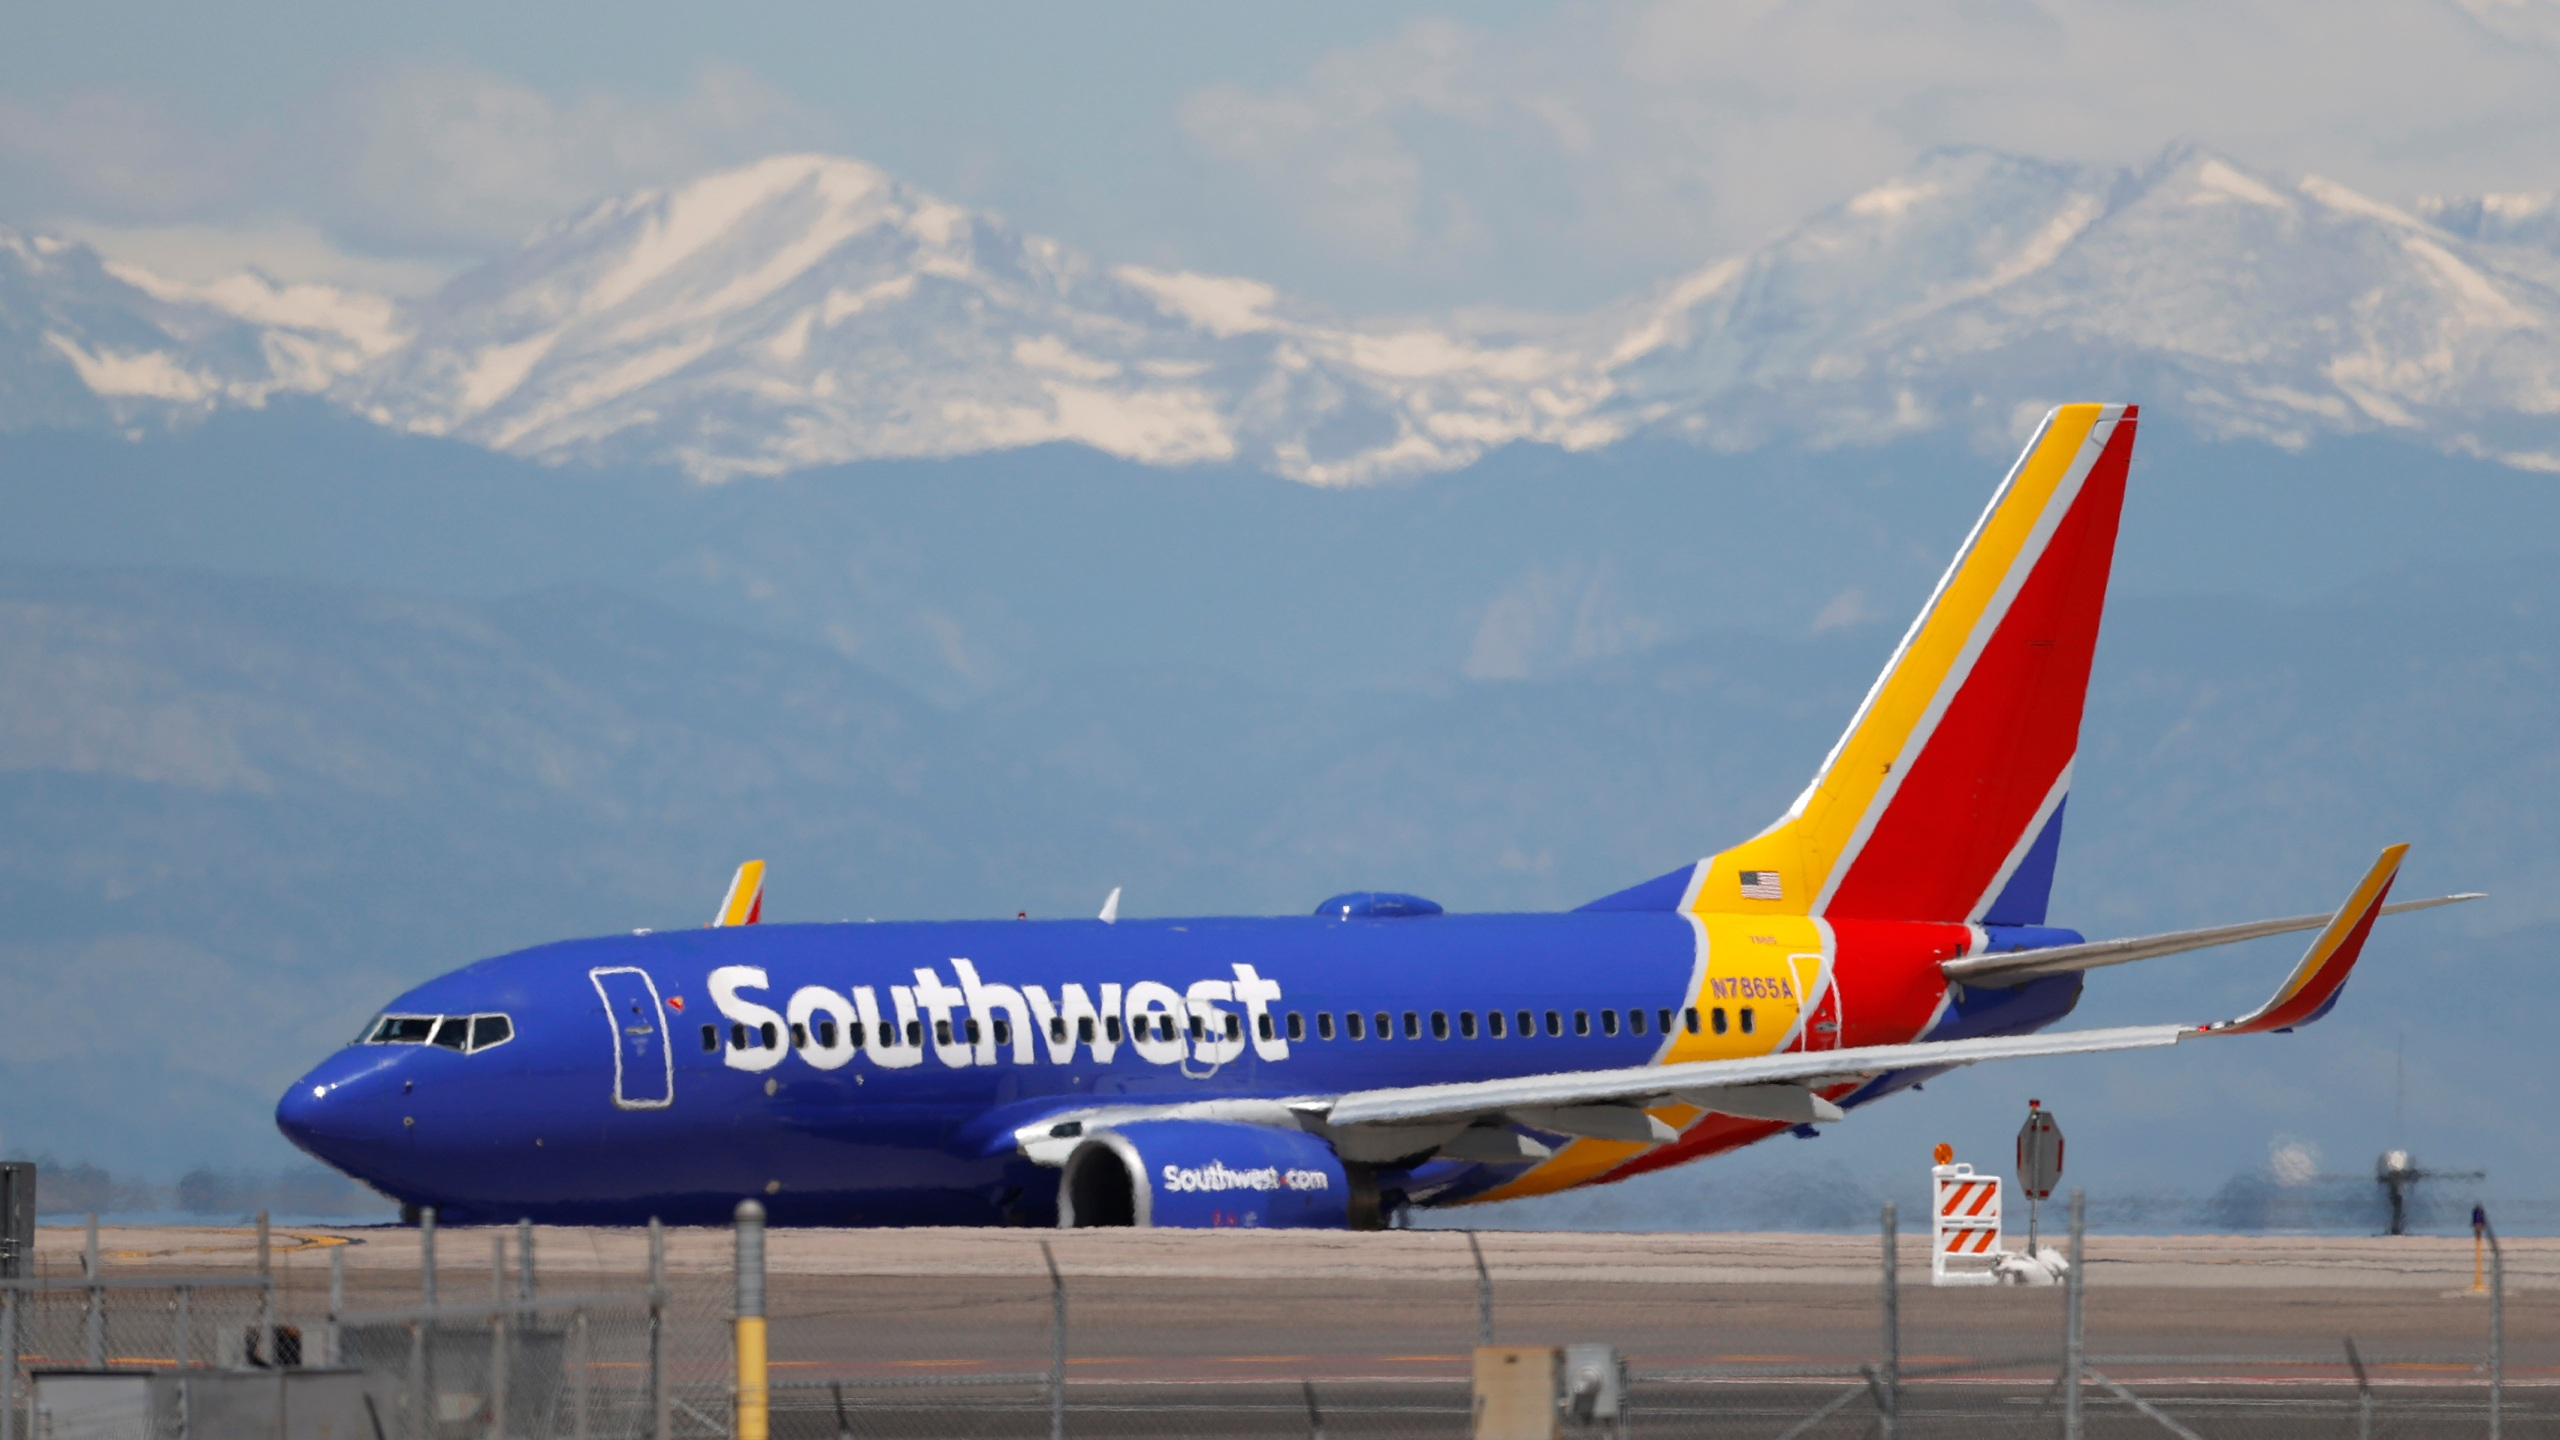 A Southwest Airlines jetliner taxis to a runway for take off at Denver International Airport as travellers deal with the effects of the new coronavirus Wednesday, June 10, 2020, in Denver. (AP Photo/David Zalubowski)